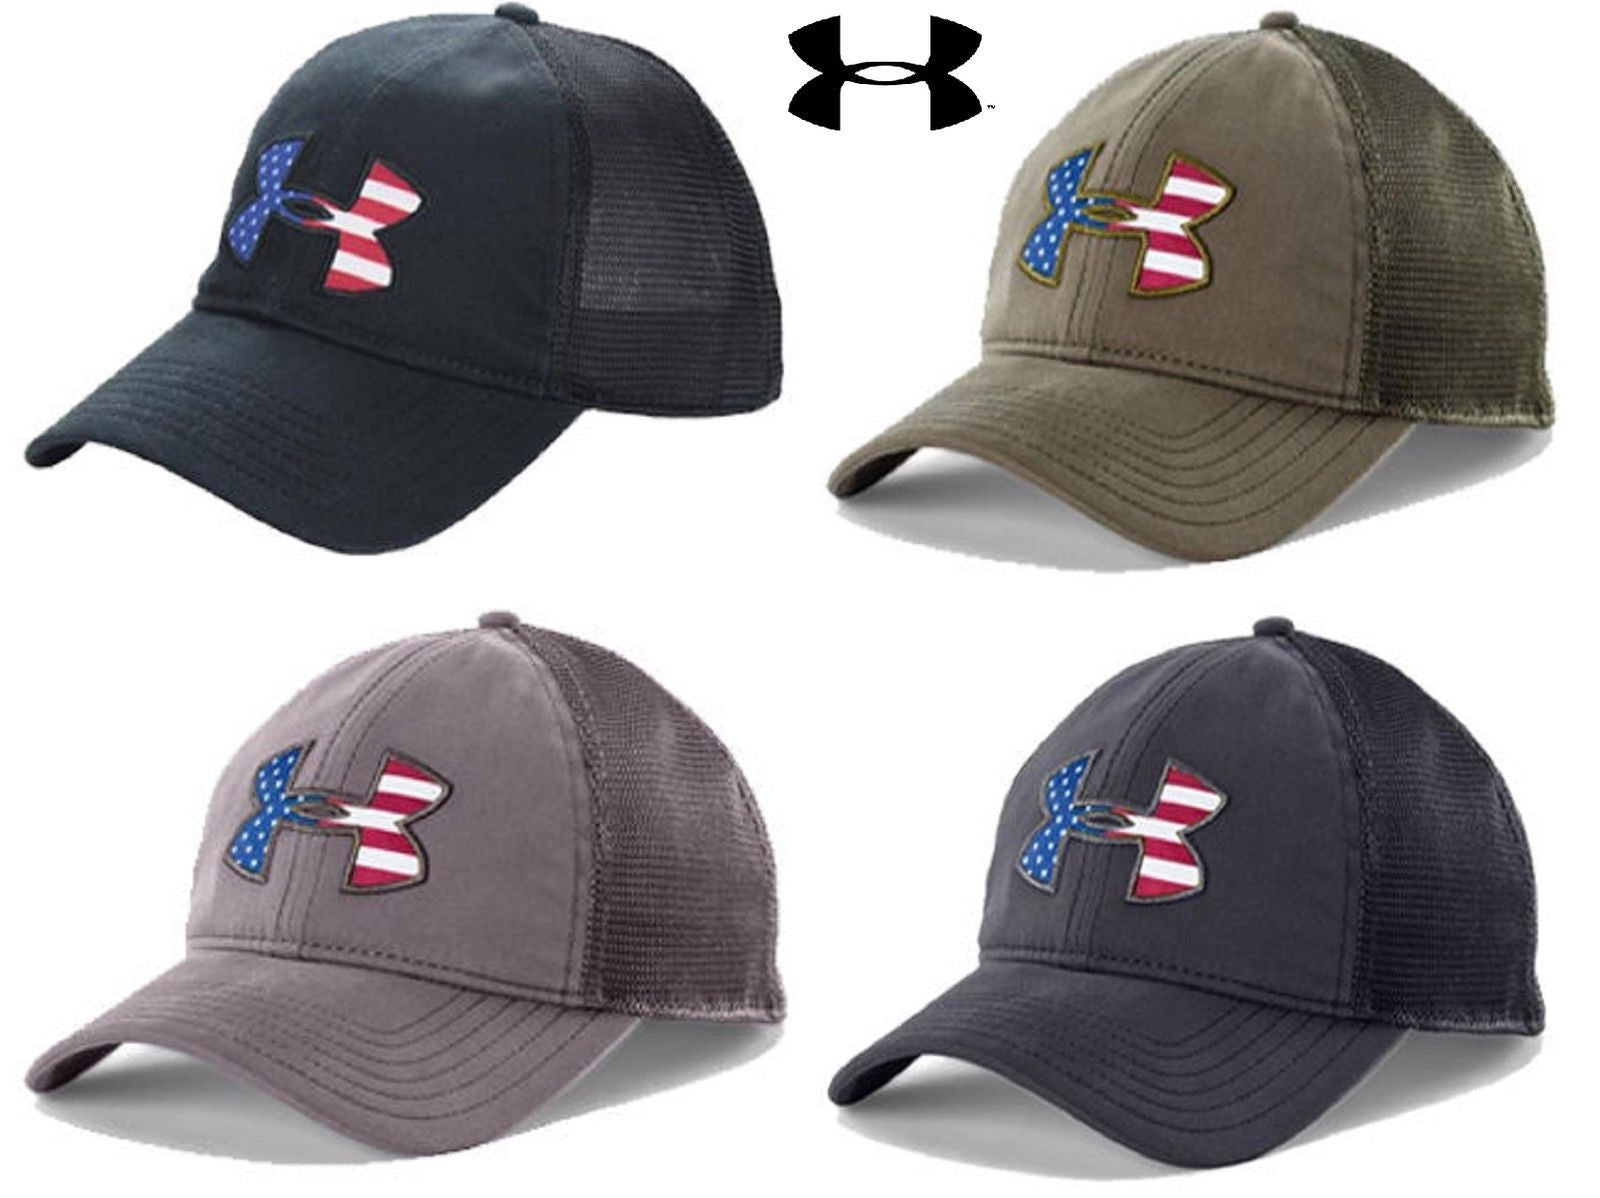 Under Armour Mens Big USA Flag Logo Cap - UA Snapback American Flag  Baseball Hat. dab62115684